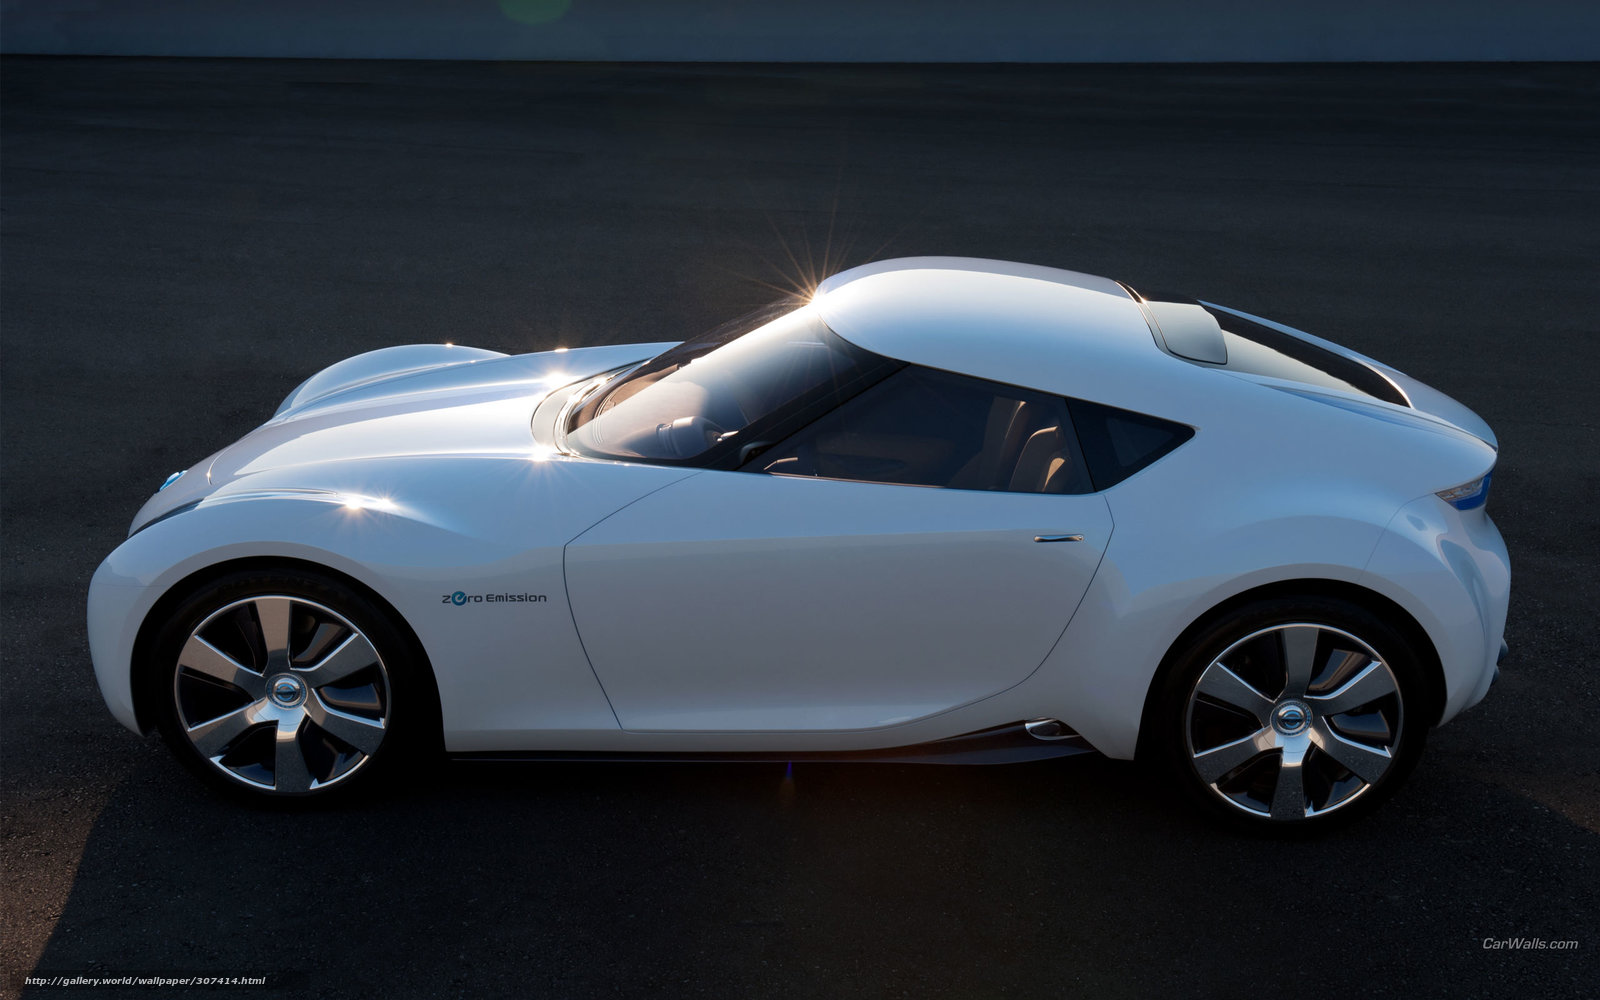 Download wallpaper nissan z car machinery free desktop wallpaper in the resolution 2560x1600 picture 307414